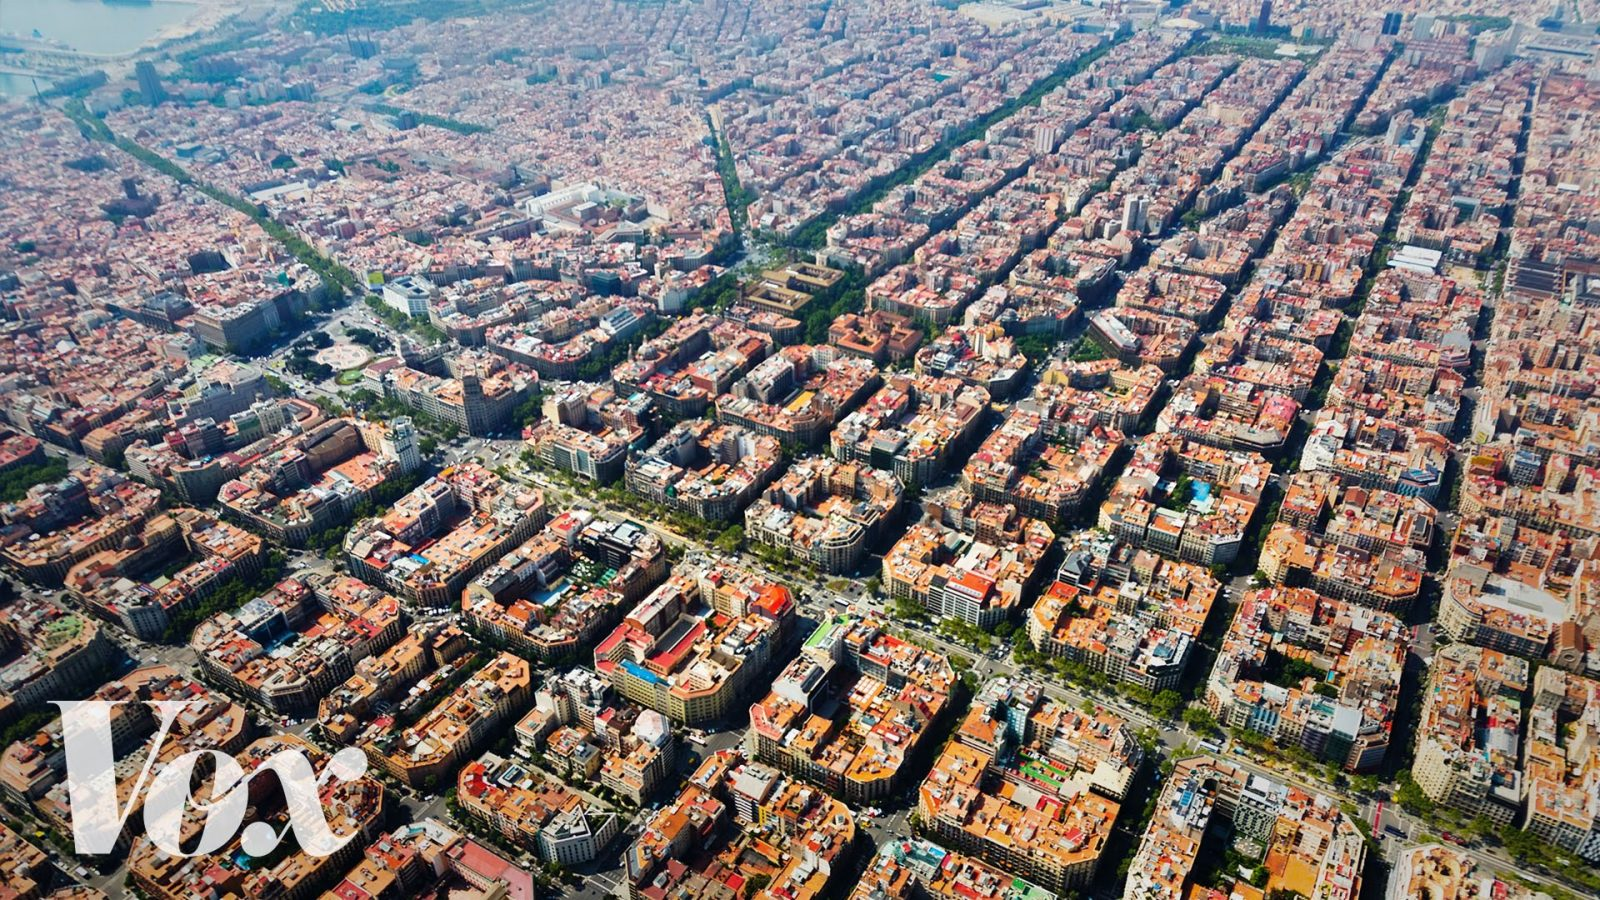 Barcelona : Fewer Cars More Life